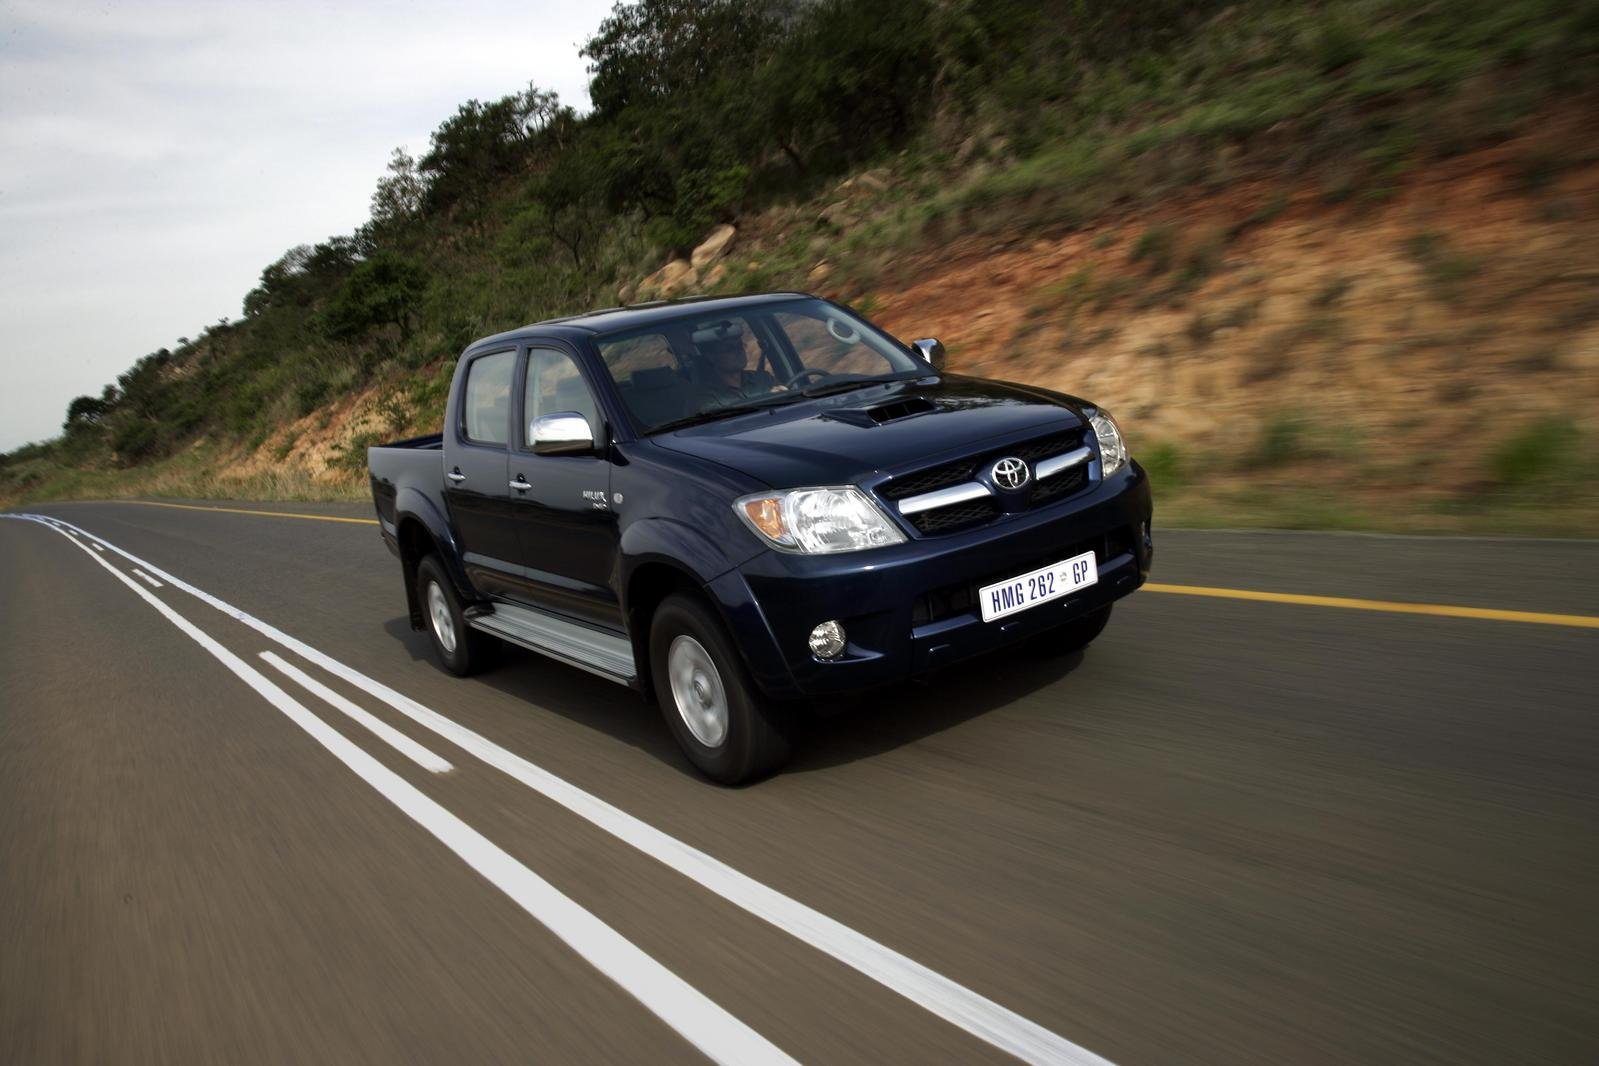 2007 toyota hilux picture 157996 car review top speed. Black Bedroom Furniture Sets. Home Design Ideas